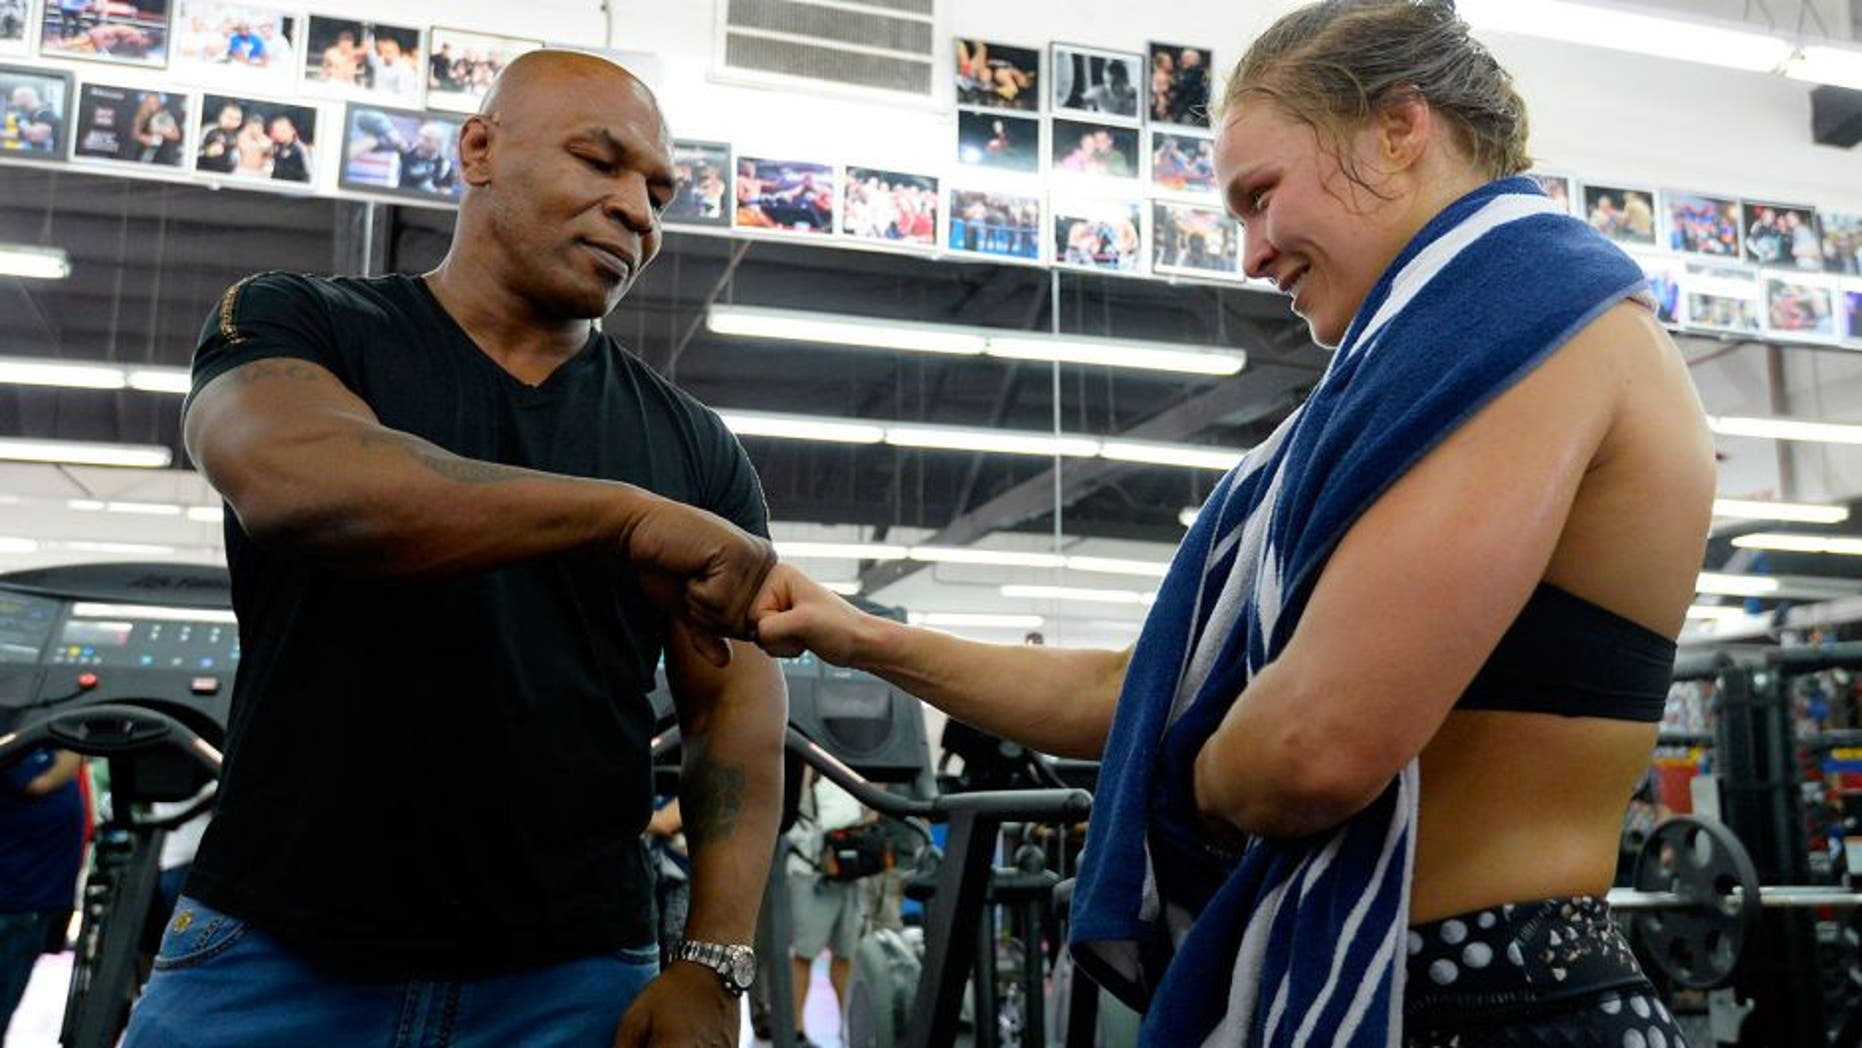 GLENDALE, CA - JULY 15: Former boxer Mike Tyson meets UFC Bantamweight champion Ronda Rousey during a media training session at the Glendale Fight Club on July 15, 2015 in Glendale, California. (Photo by Robert Laberge/Zuffa LLC/Zuffa LLC via Getty Images)